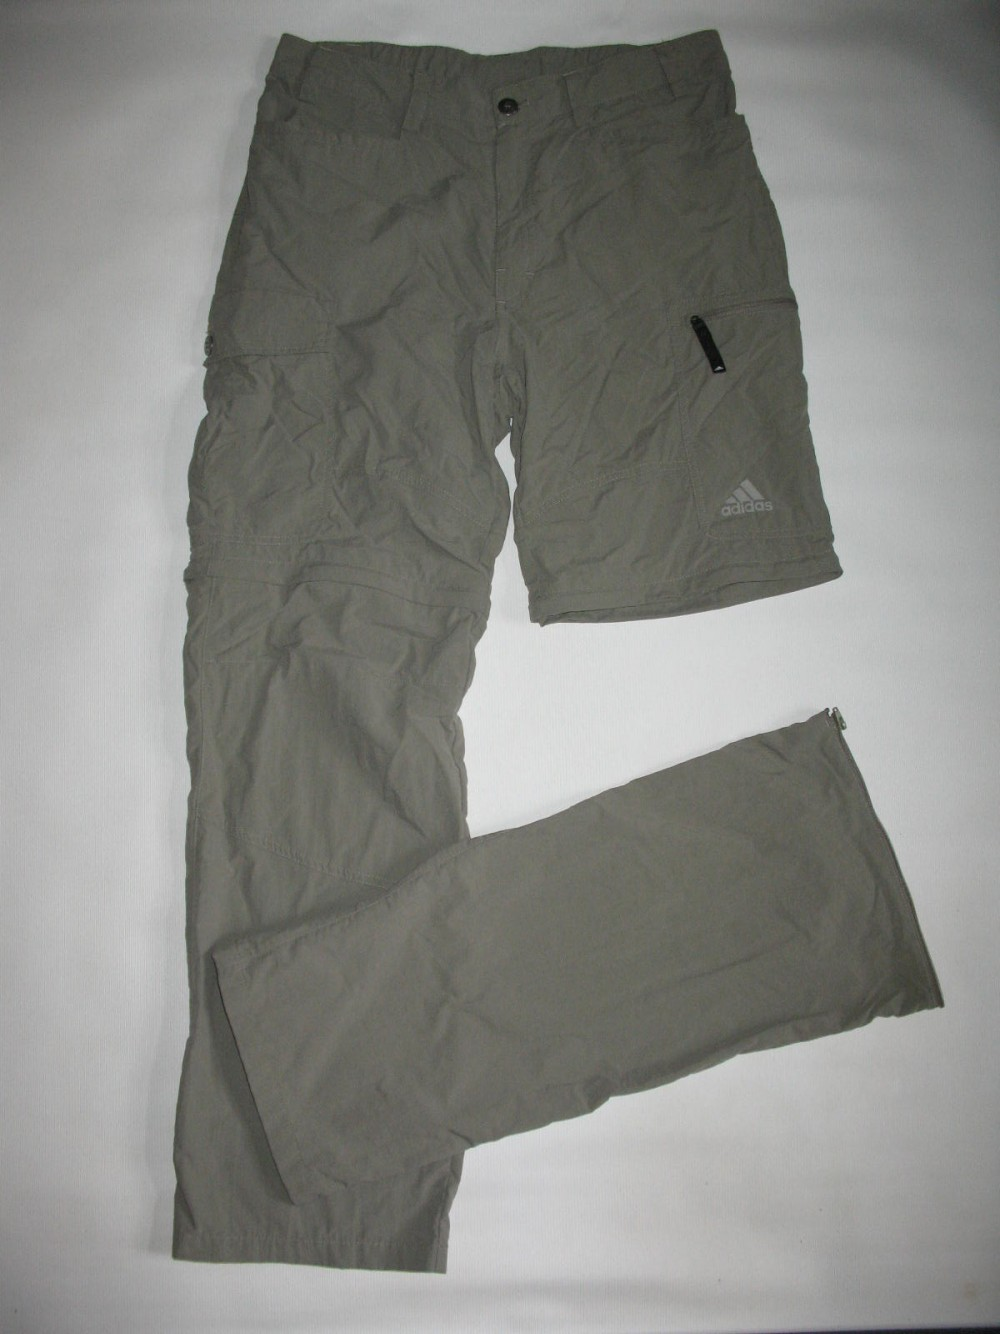 Штаны ADIDAS ht hike 2in1 outdoor pants (размер 50/L) - 7